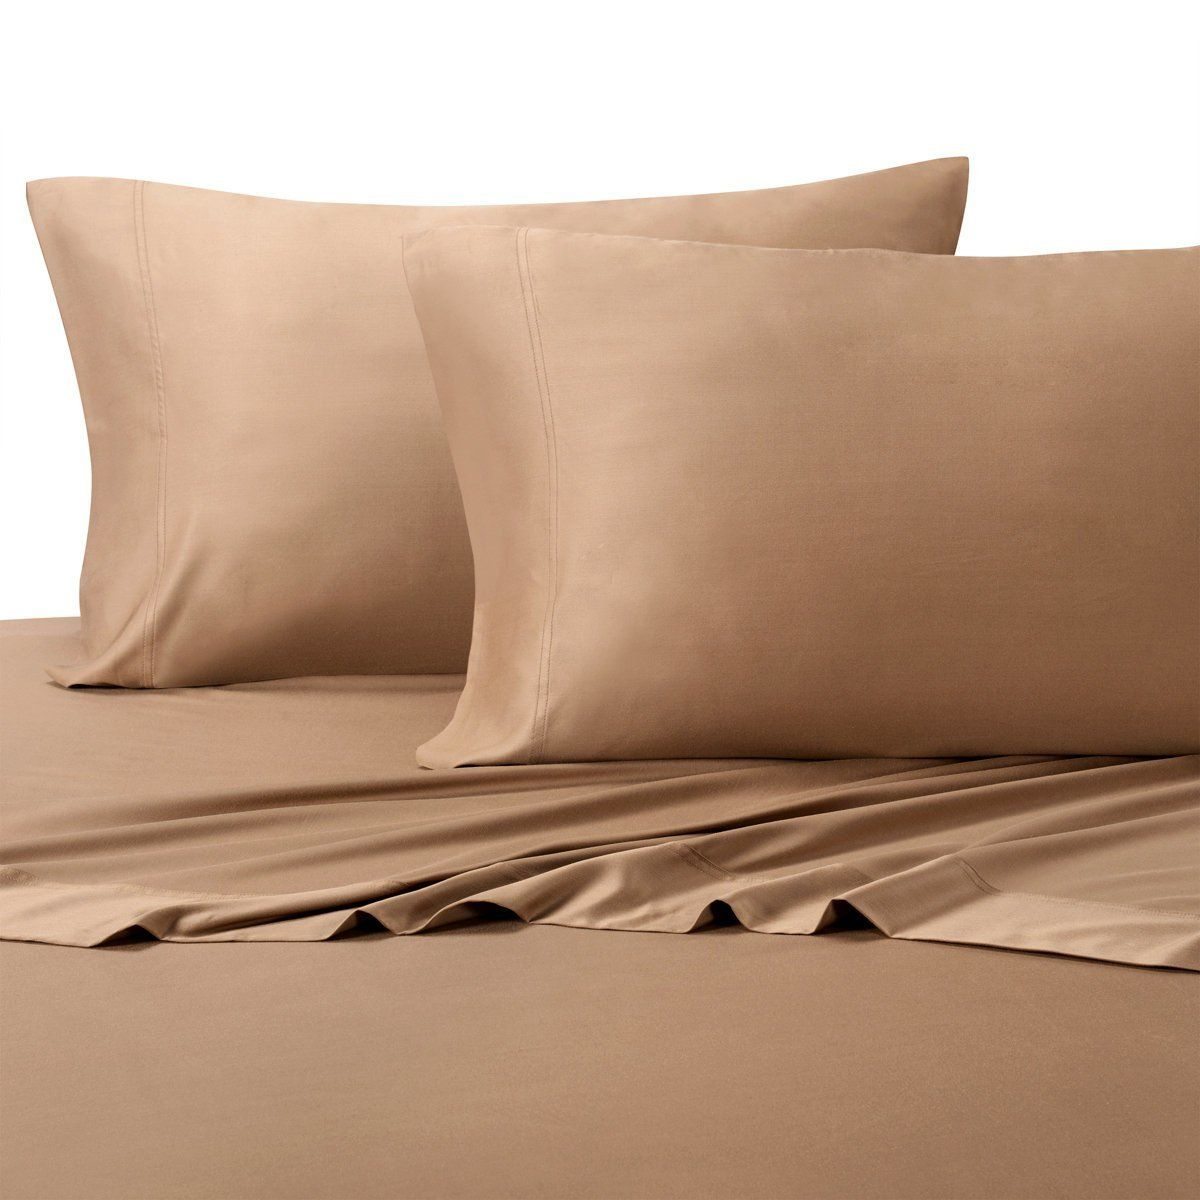 These 100 Bamboo Viscose Sheets Are Well Known For Their Natural